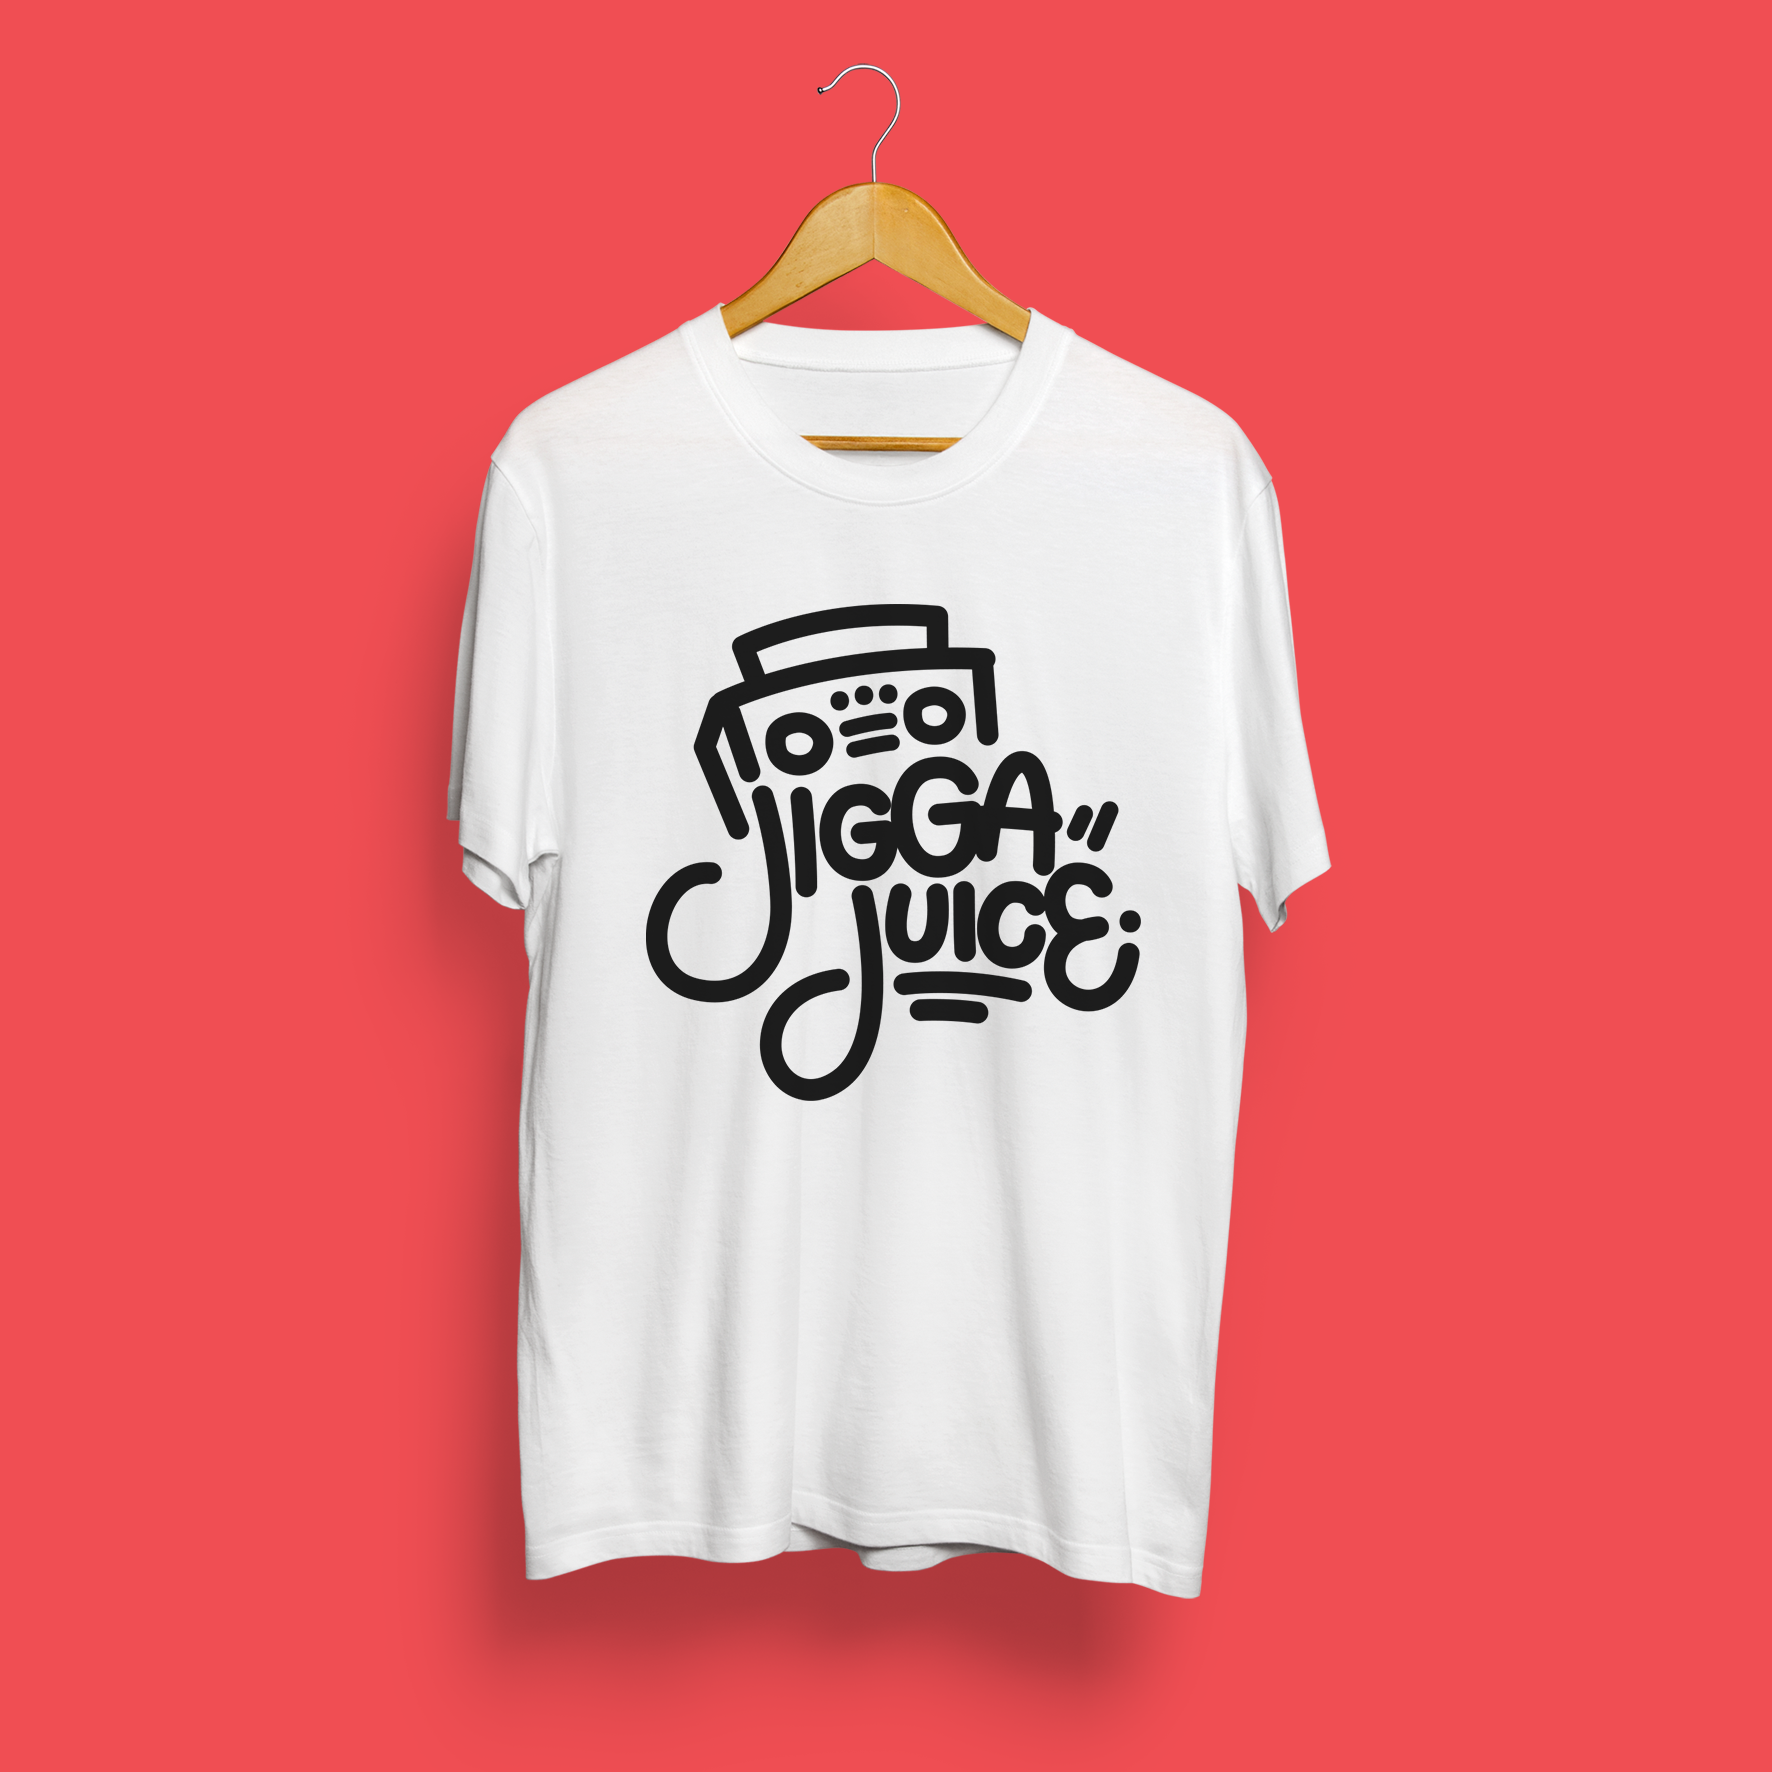 Jigga Juice - New T-Shirt